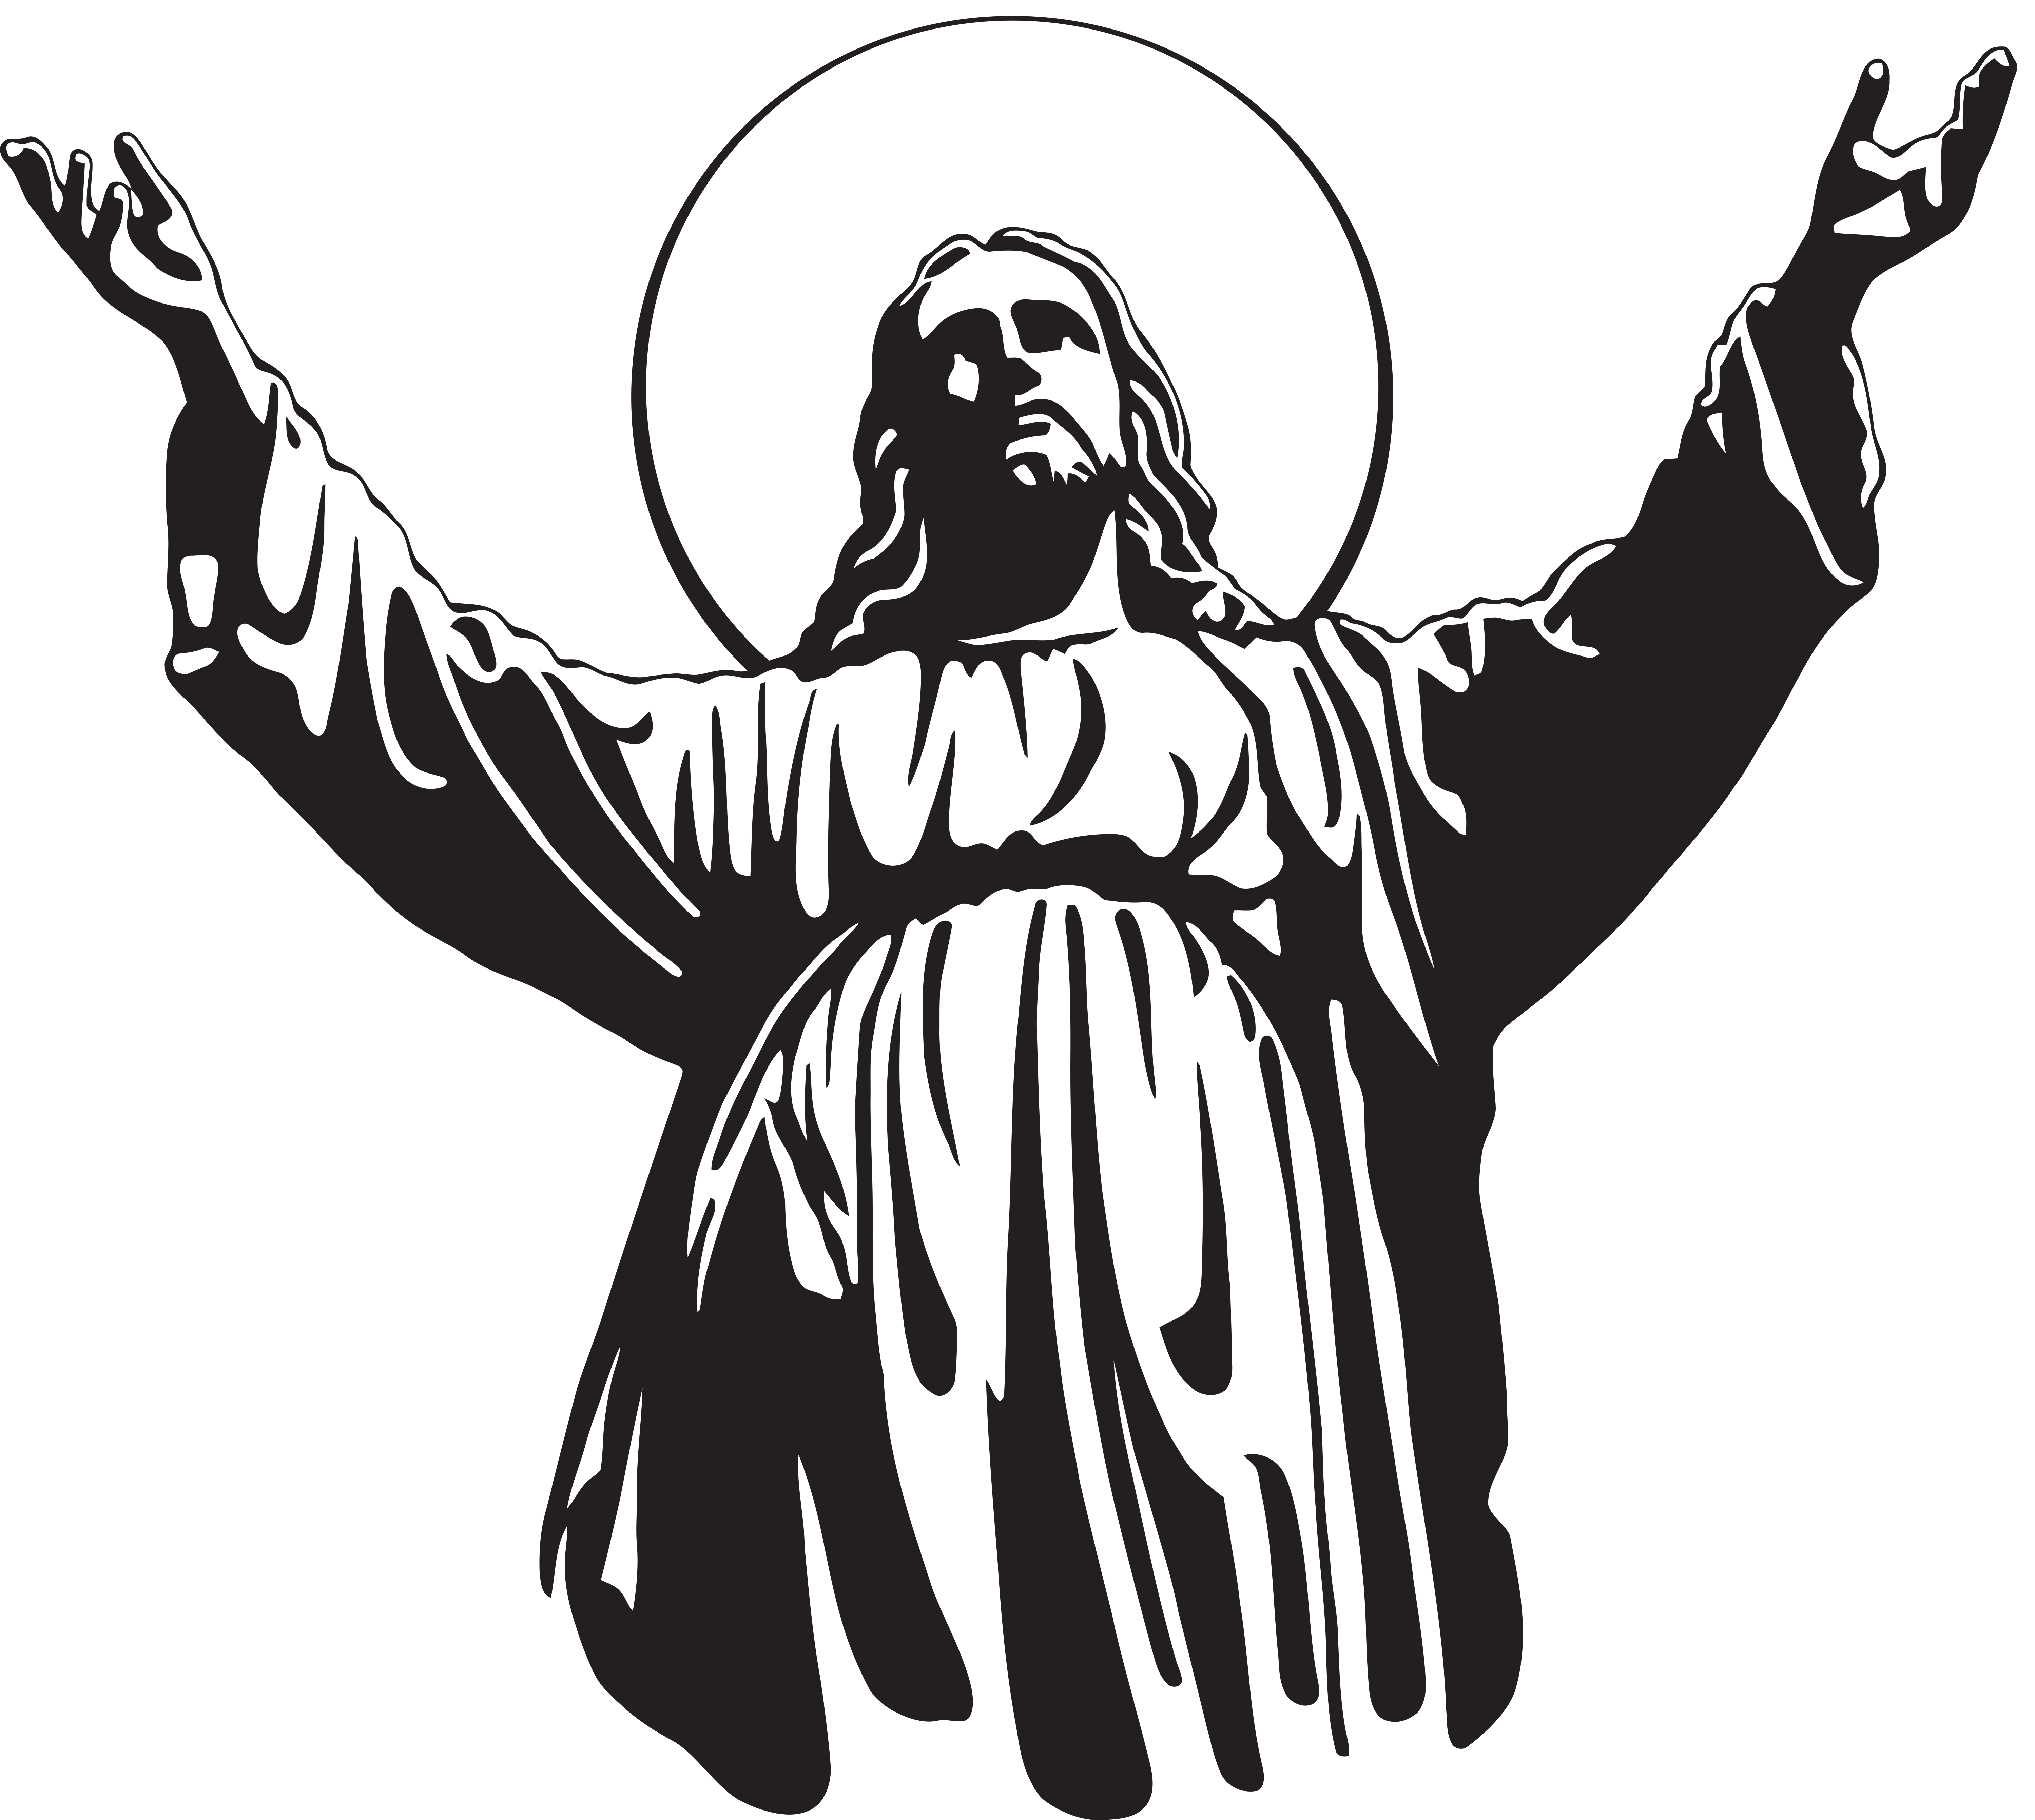 6000x5367 Jesus Christ Son Of God Png Clip Art Churches Amp Religious